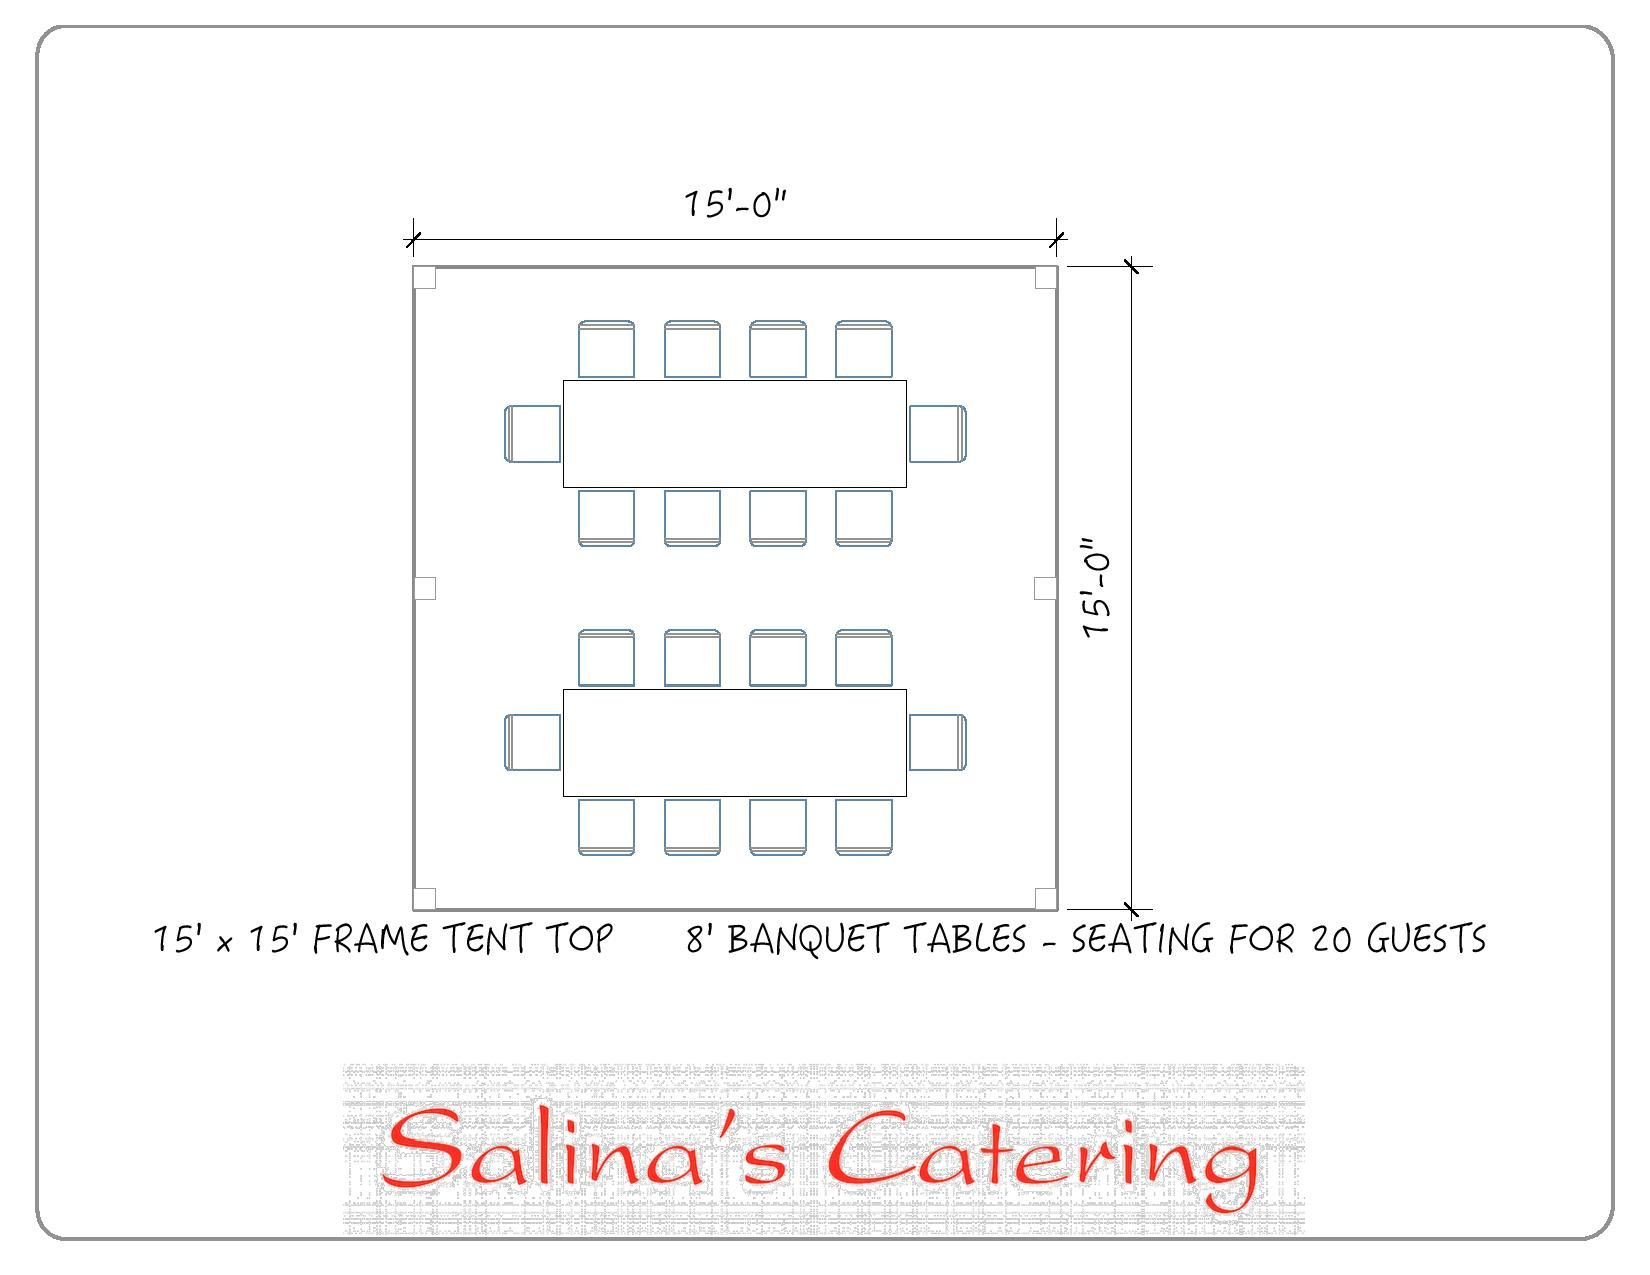 banquet table layout generator